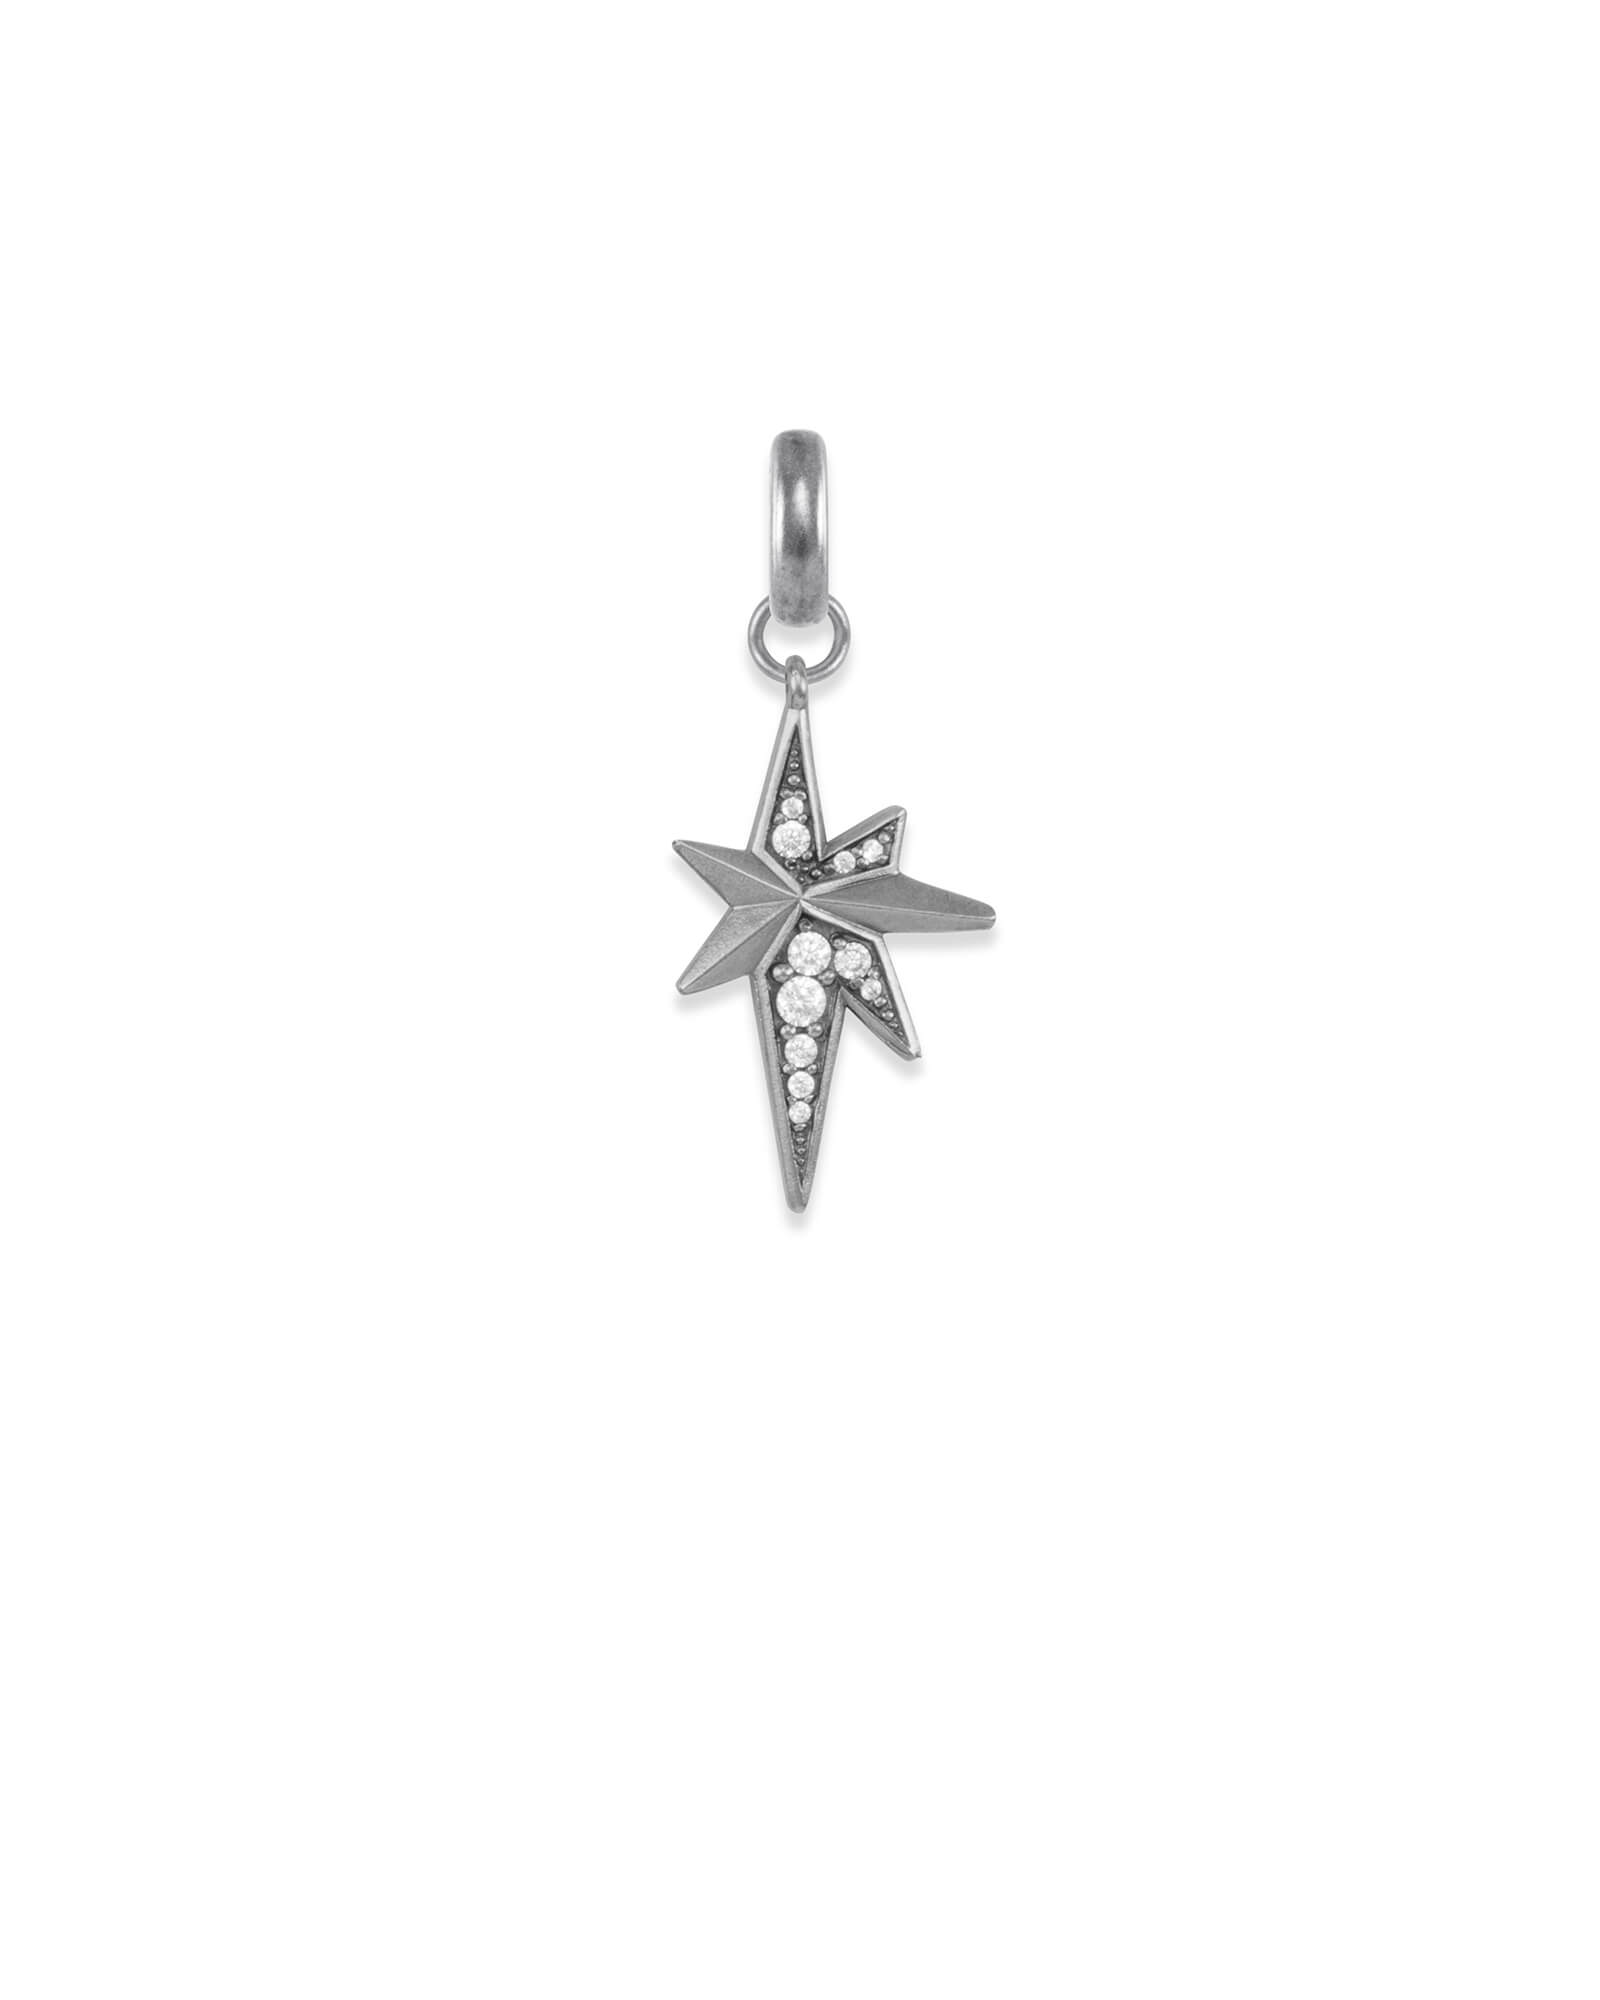 North Star Charm in Vintage Silver